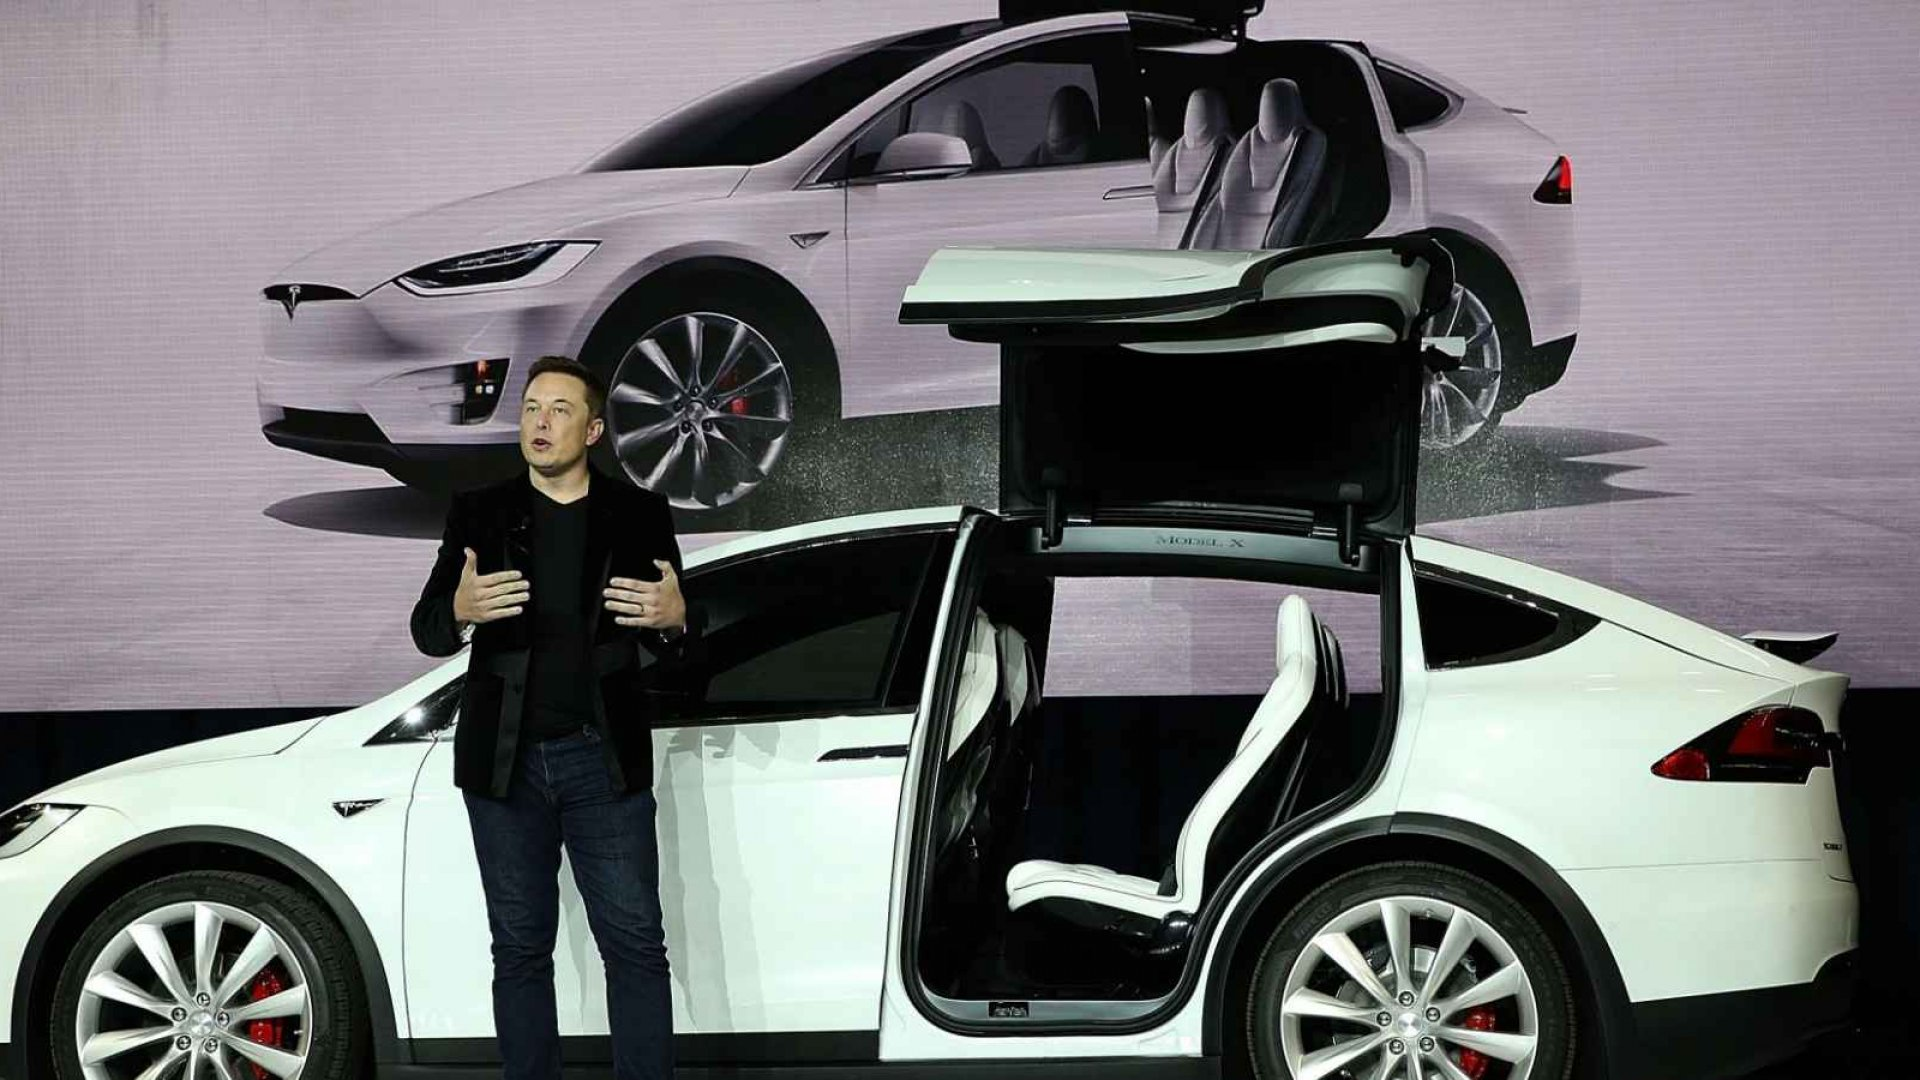 Silicon Valley May Have Underestimated How Hard It Is for Tesla to Scale